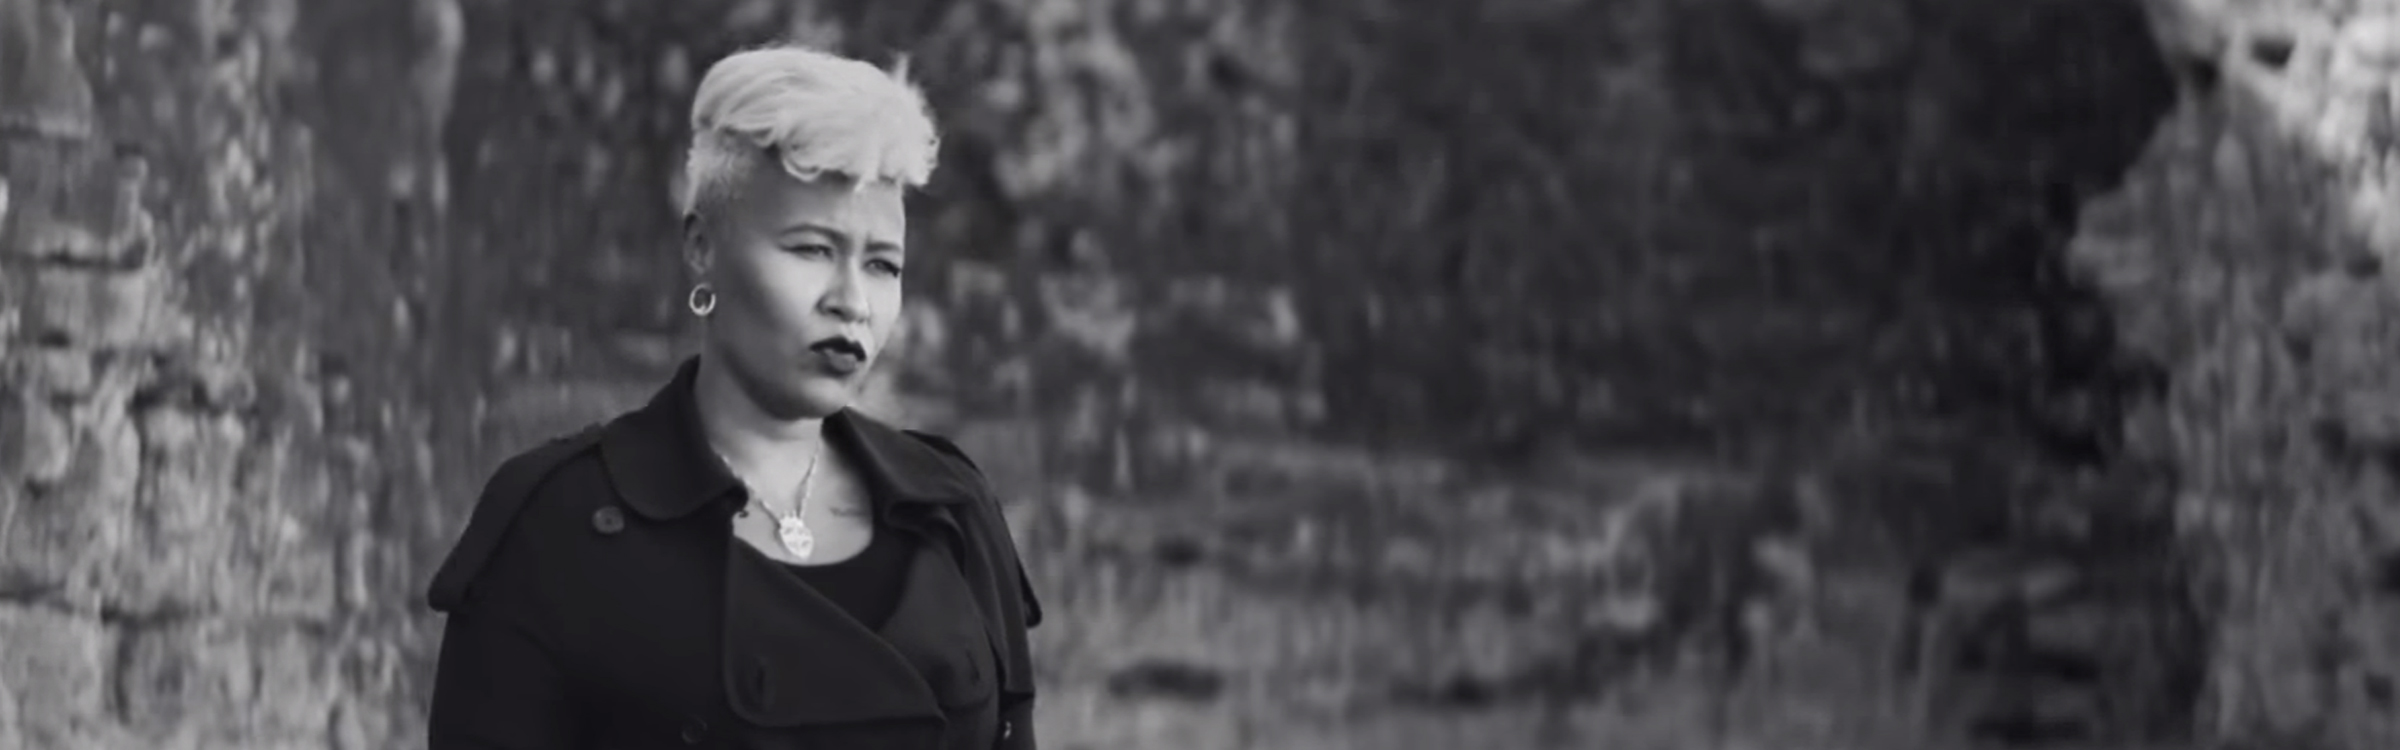 Emeli clippie header